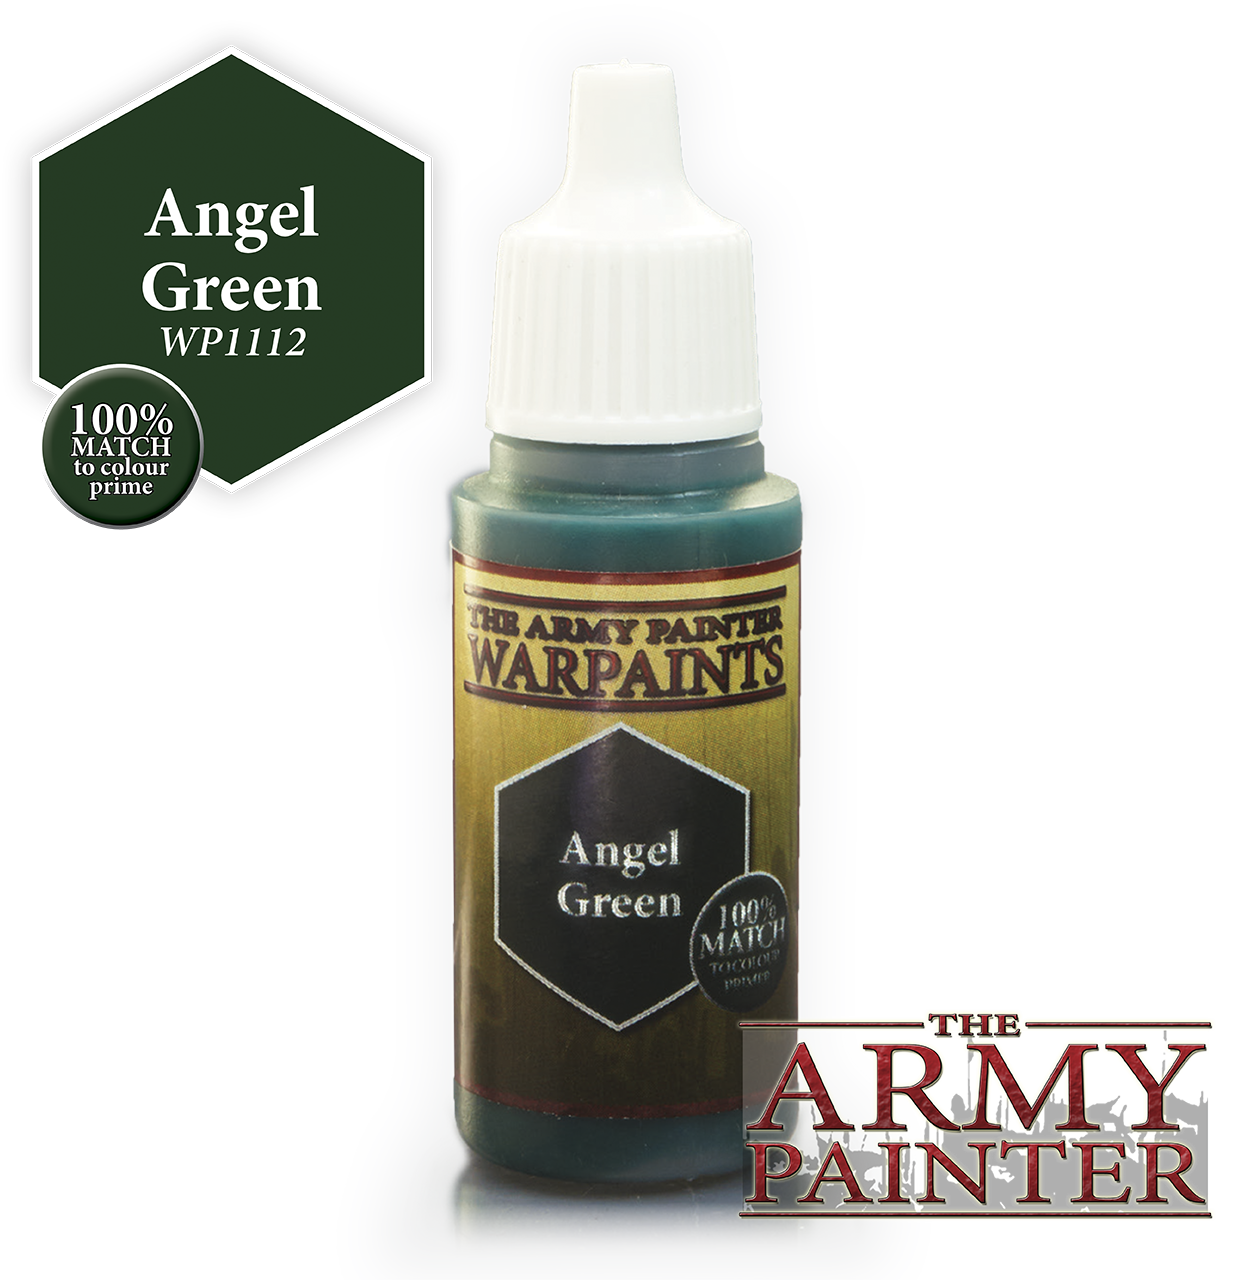 The Army Painter Warpaint Angel Green